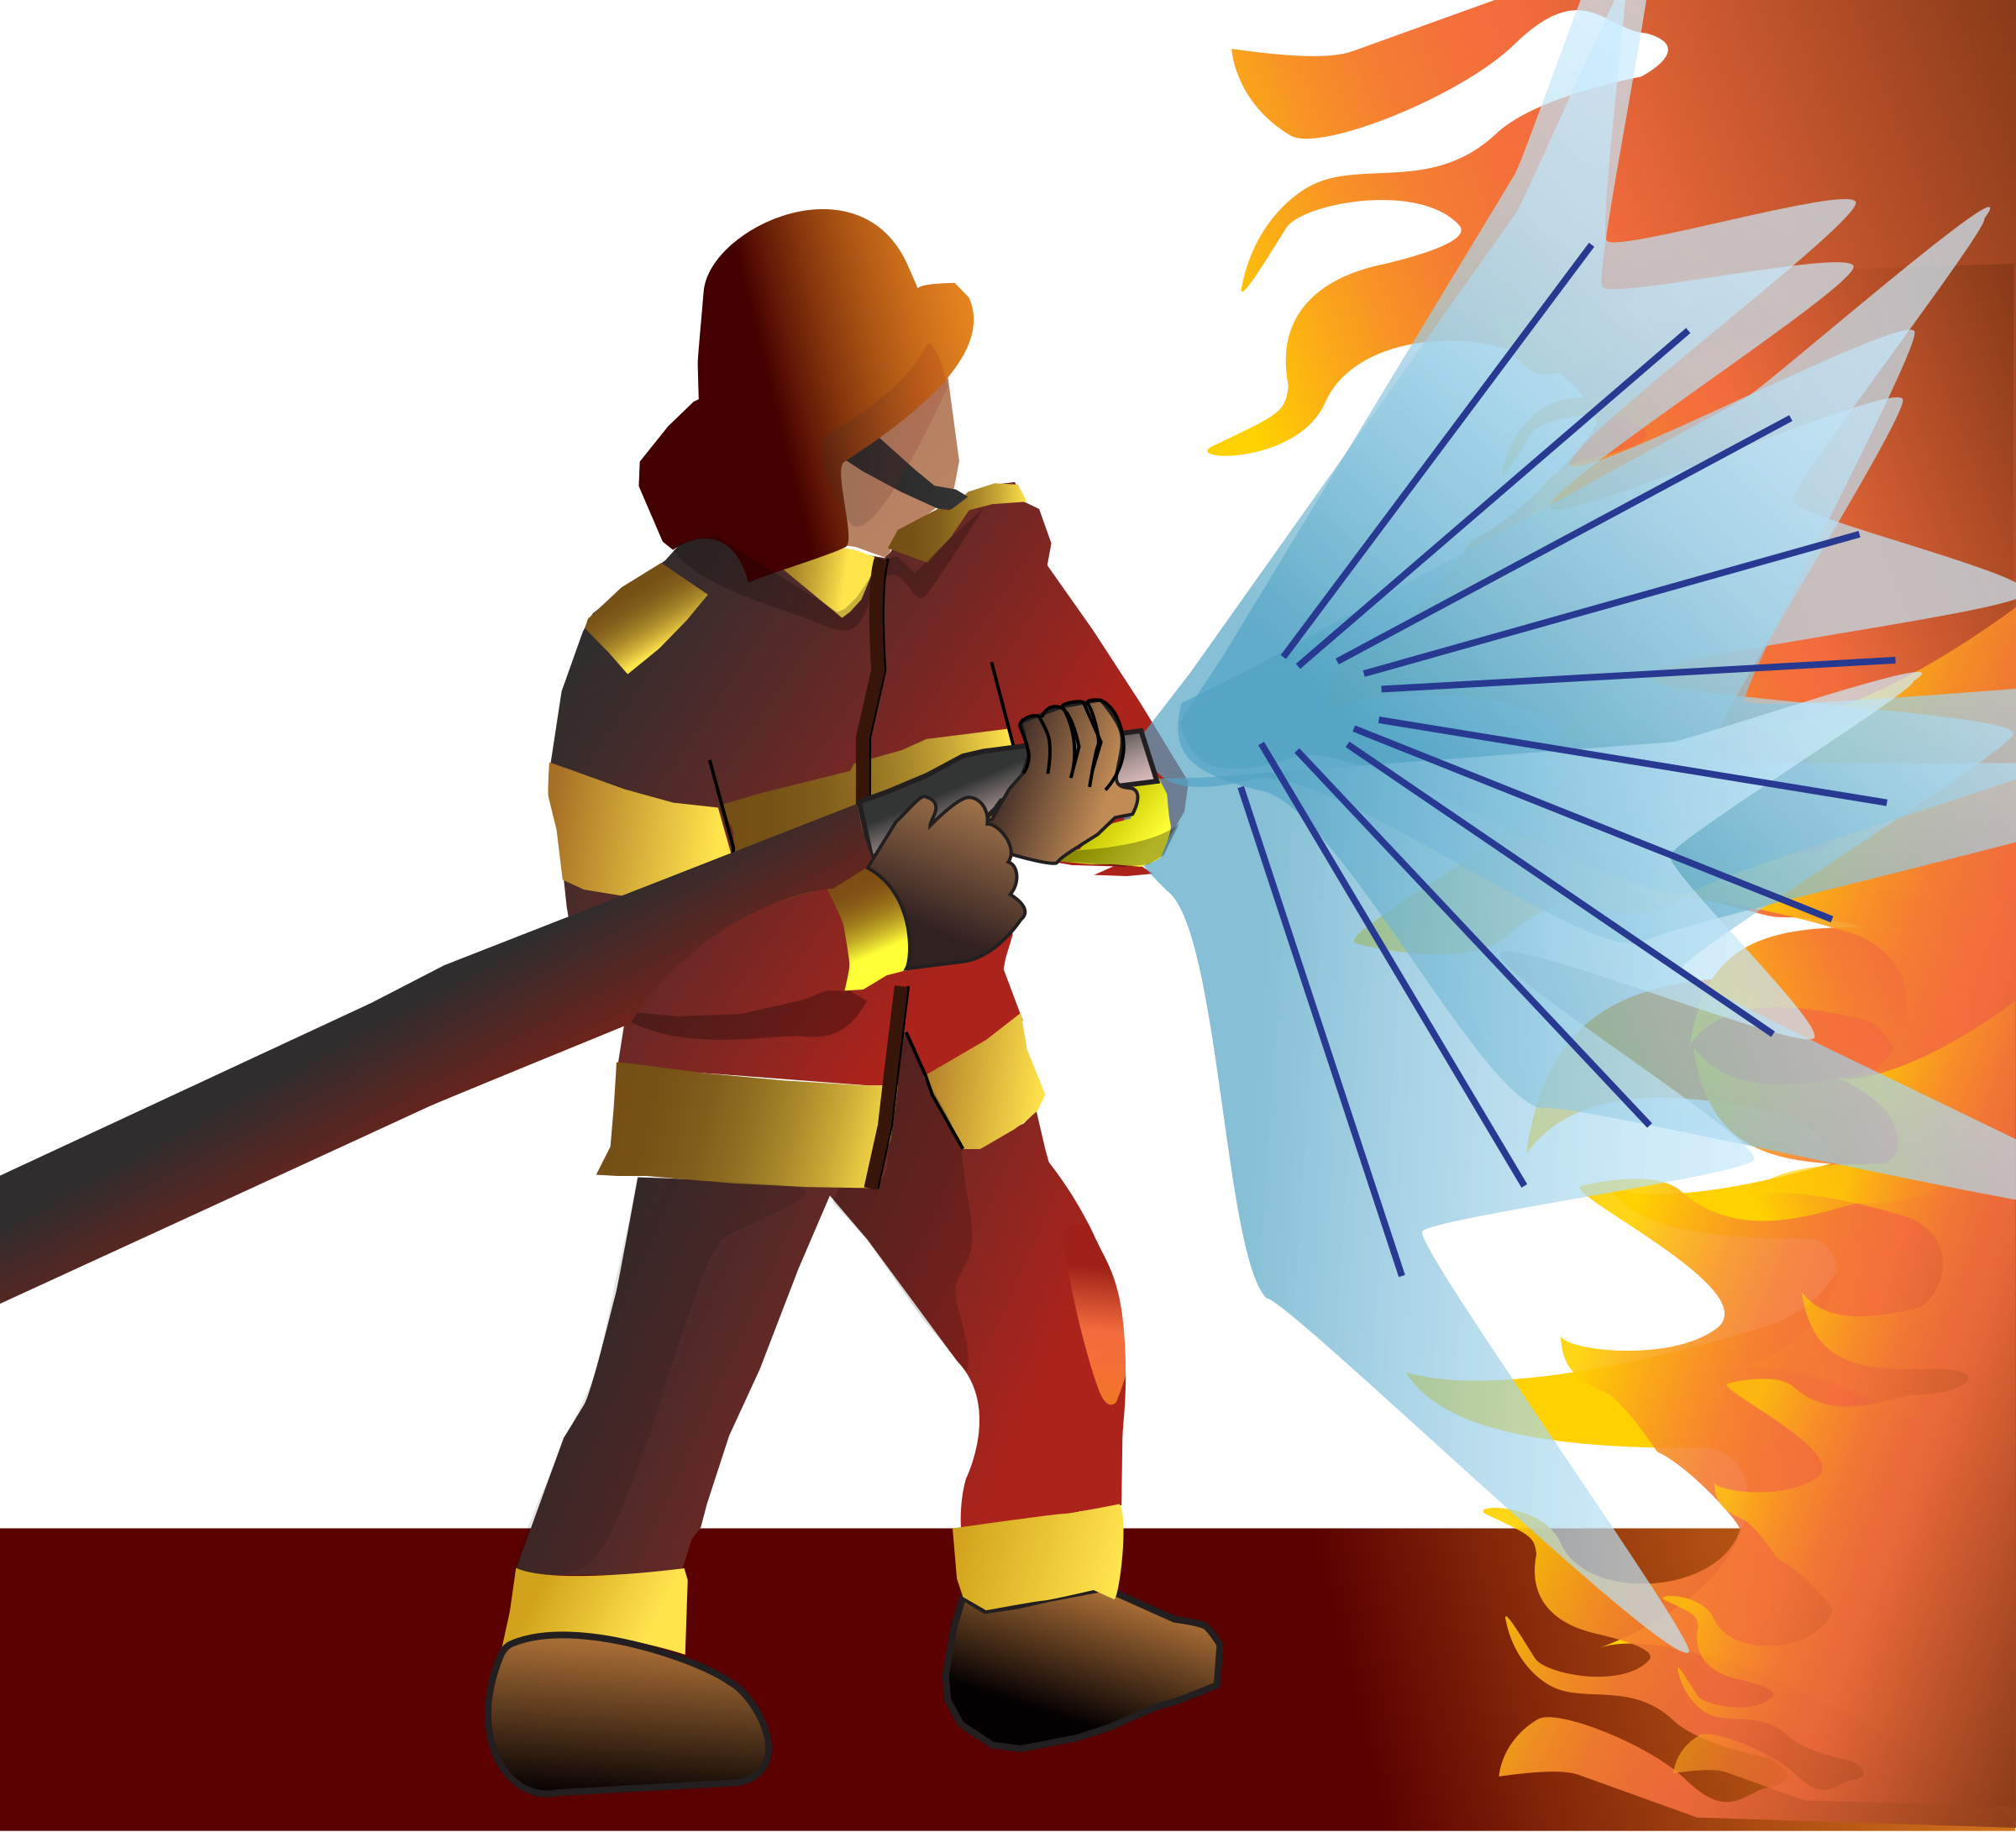 Firefighter fire clip art. Fighter clipart firefigher picture free stock